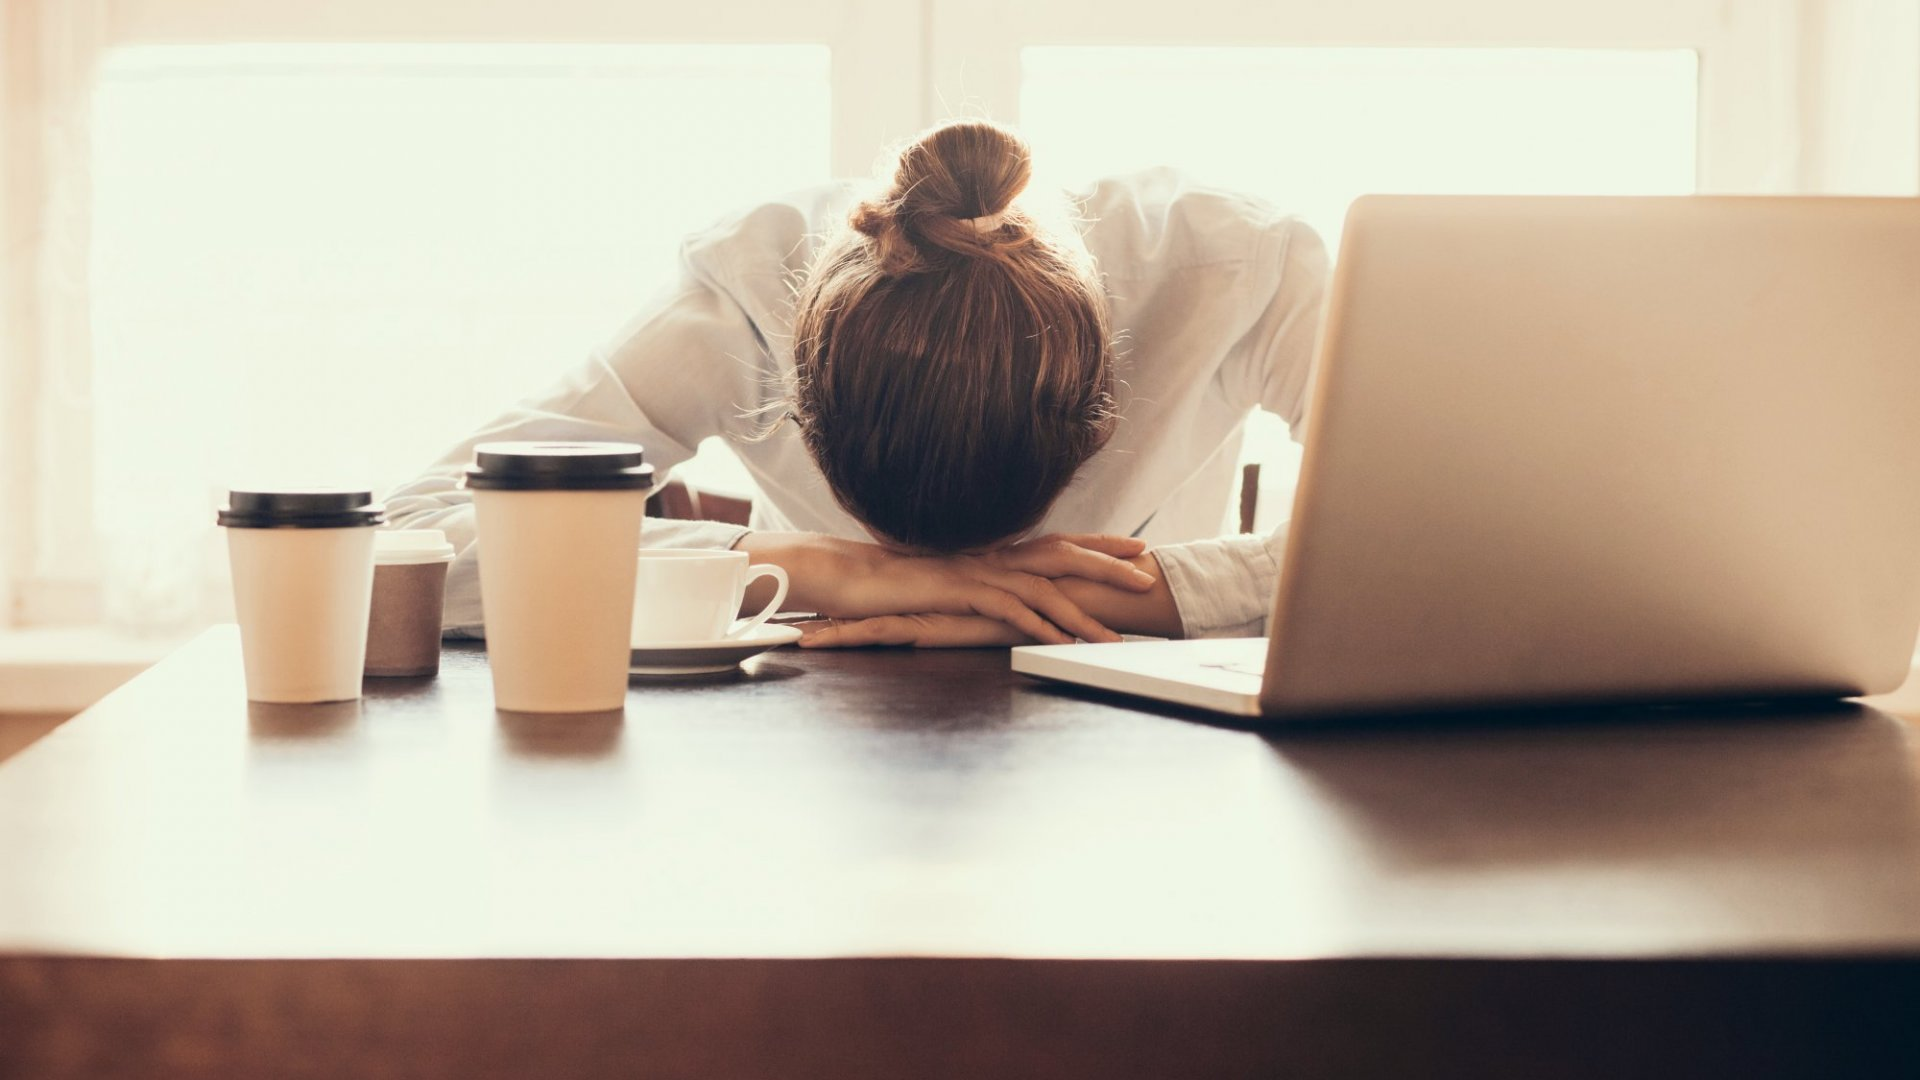 The Real Cost Of Startup Stress And What To Do About It